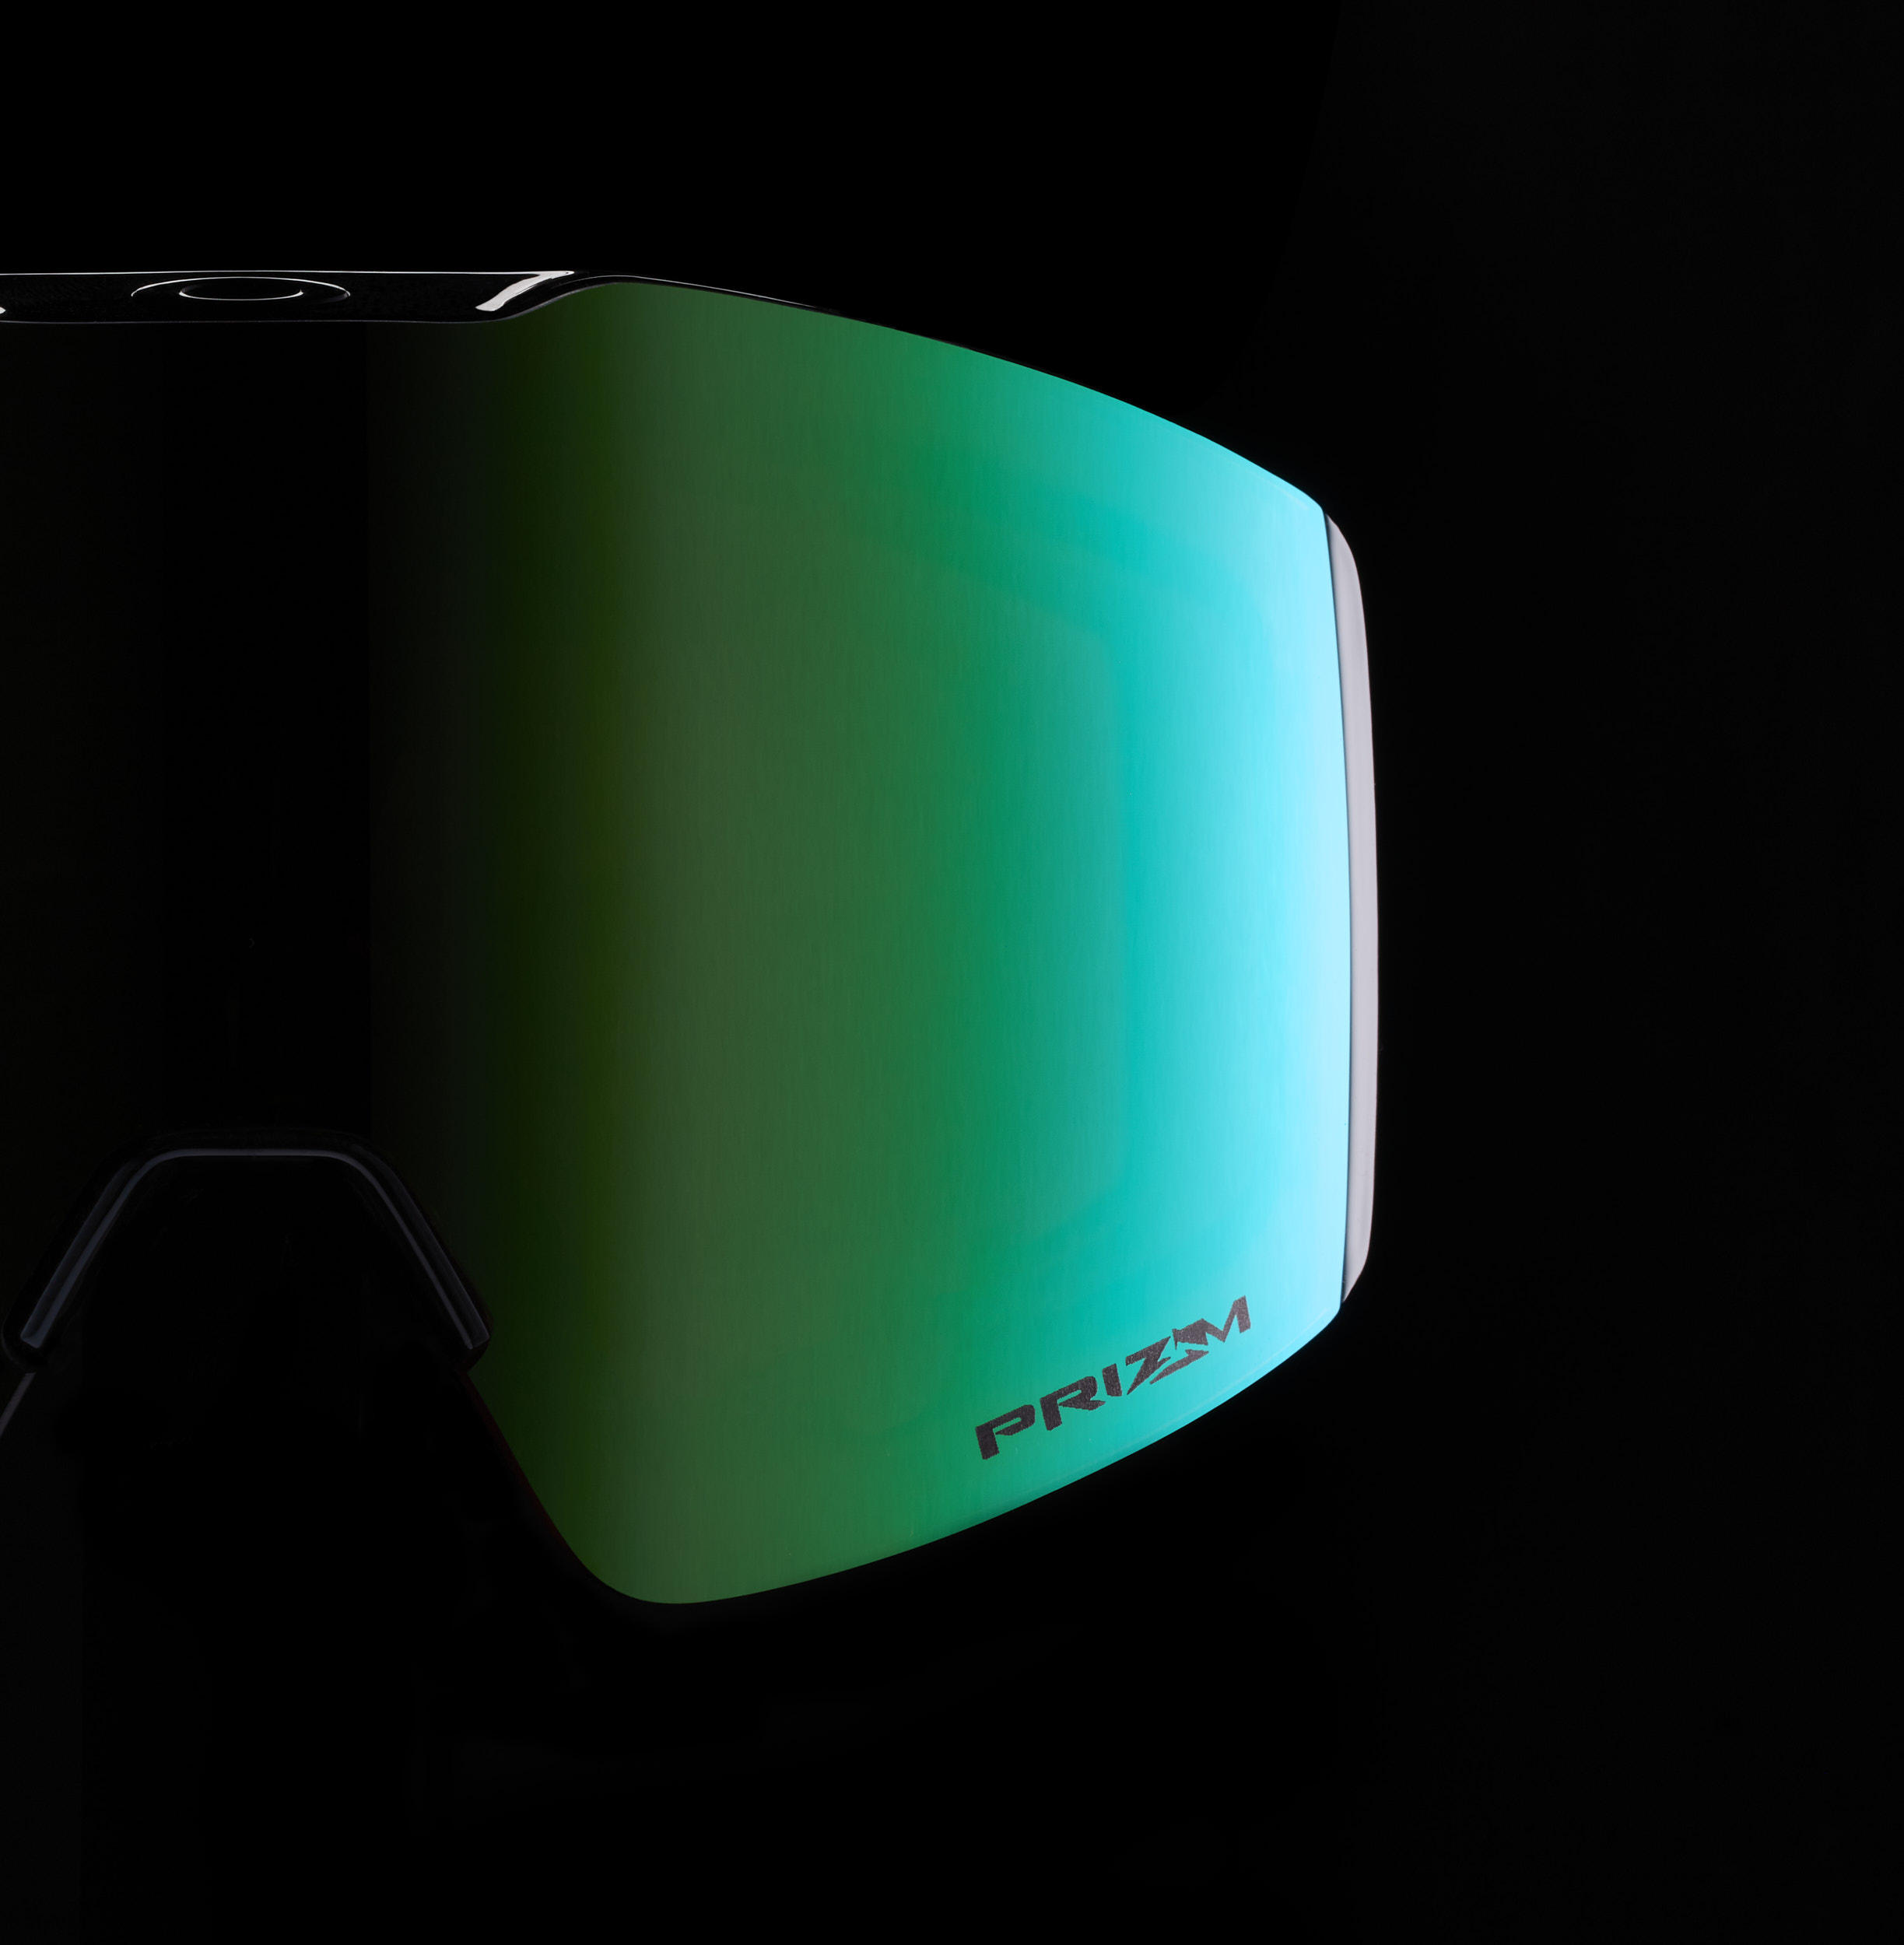 Oakley Prizm Fall Line Ski and Snowboard Goggles